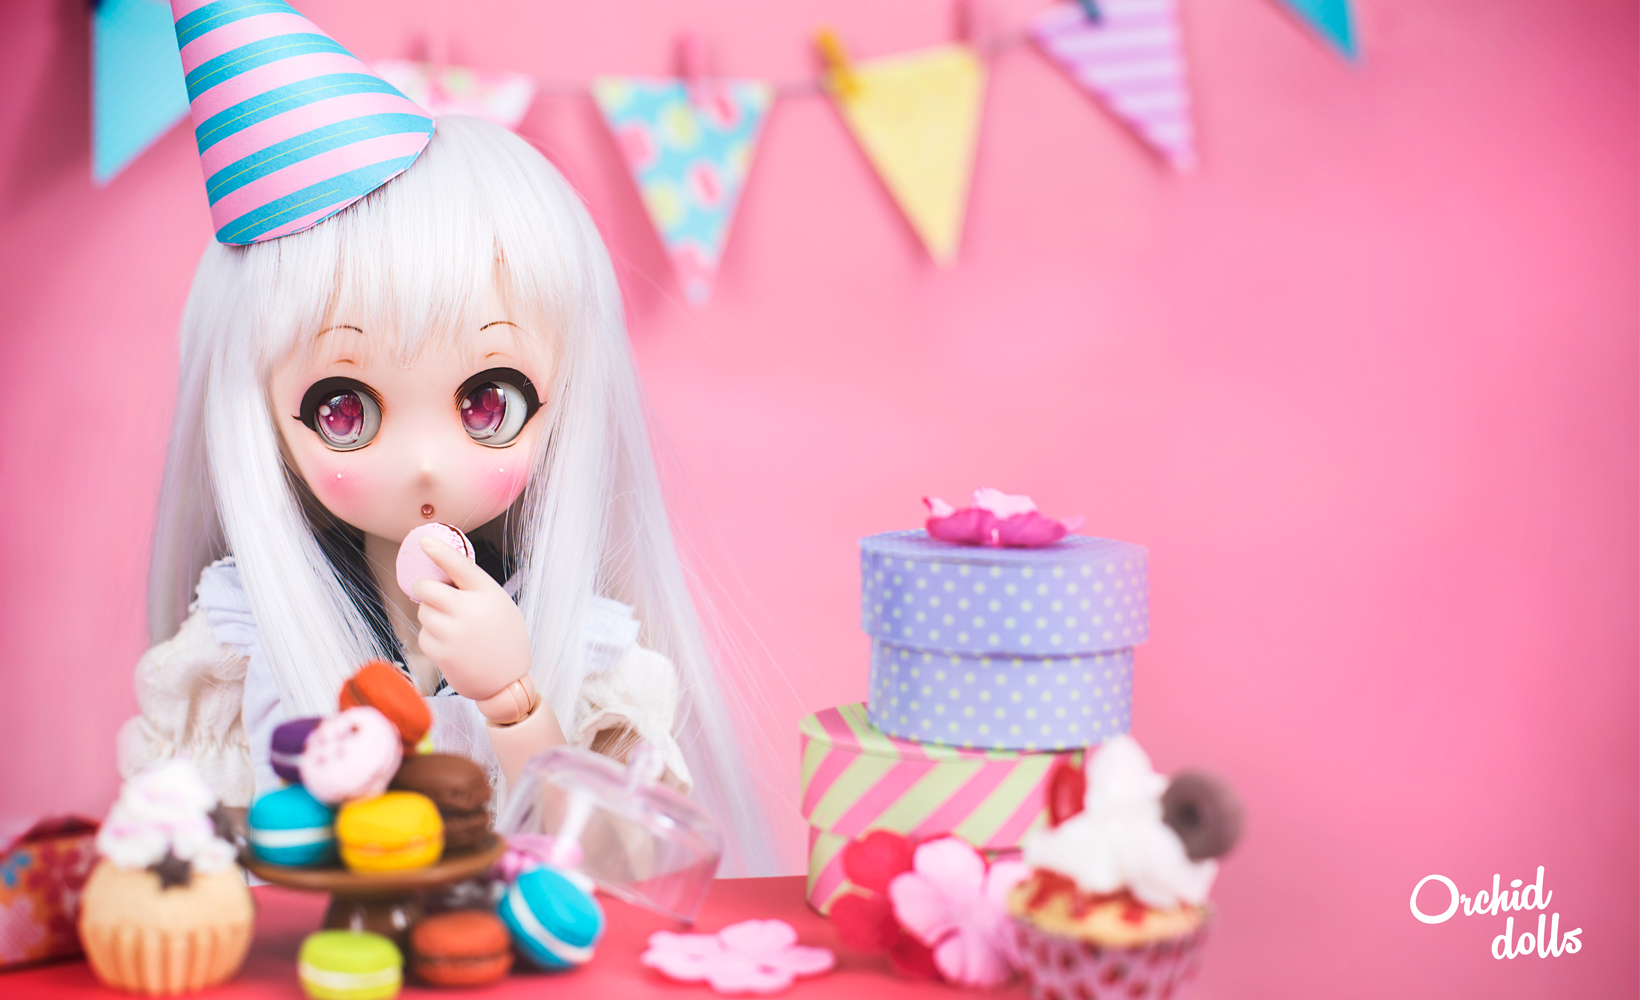 Dollfie Dream comiendo macarons Nebula